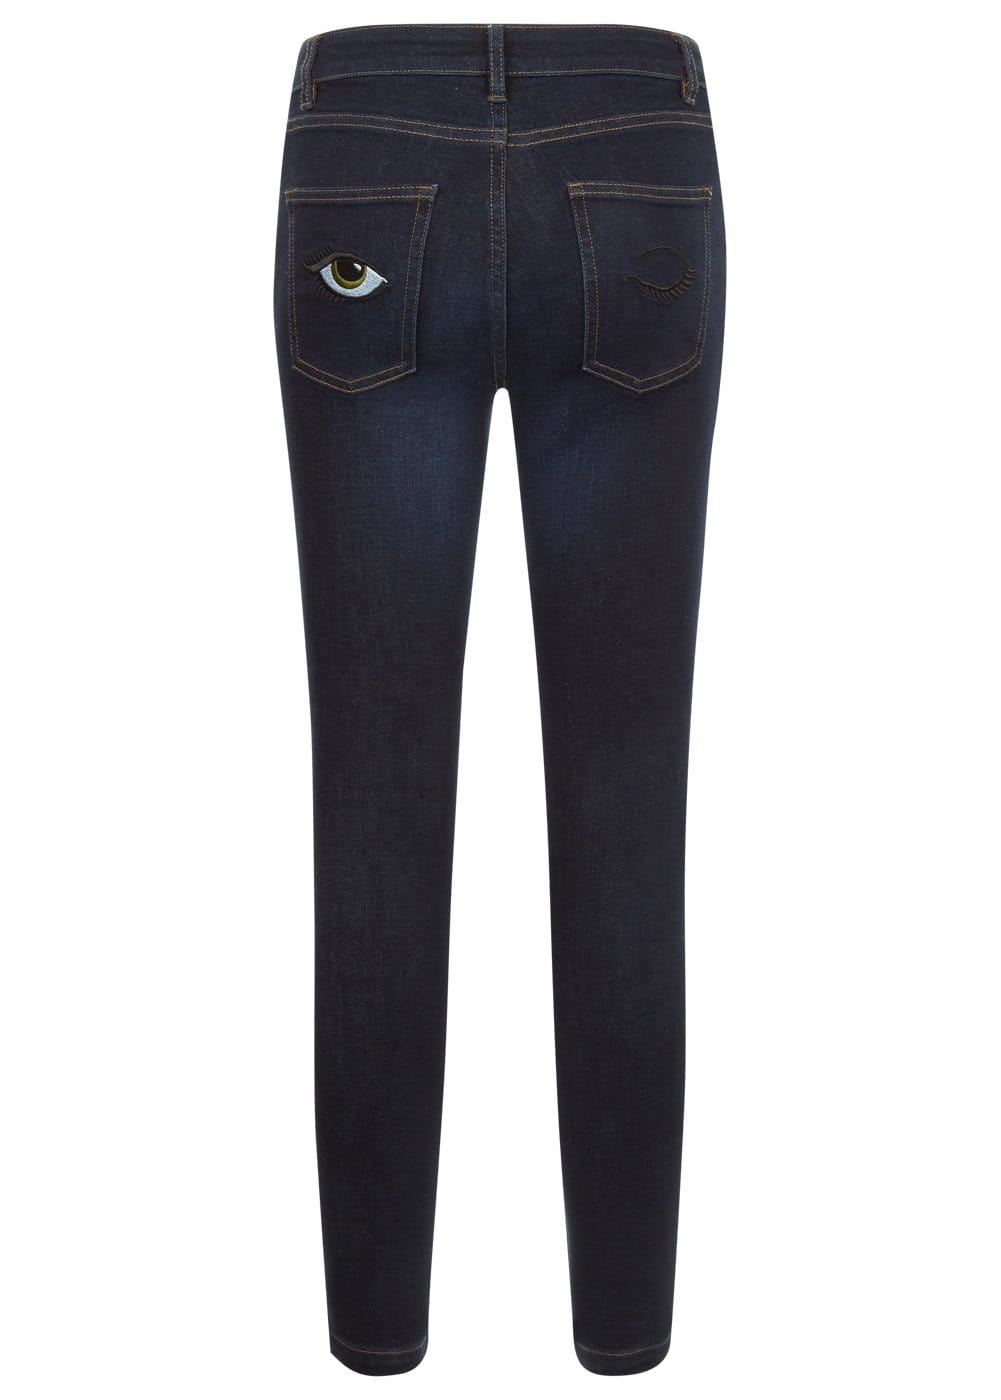 Teenzshop Youth Girls Dark Blue Skinny Jeans with Embroidered Eyes Pockets